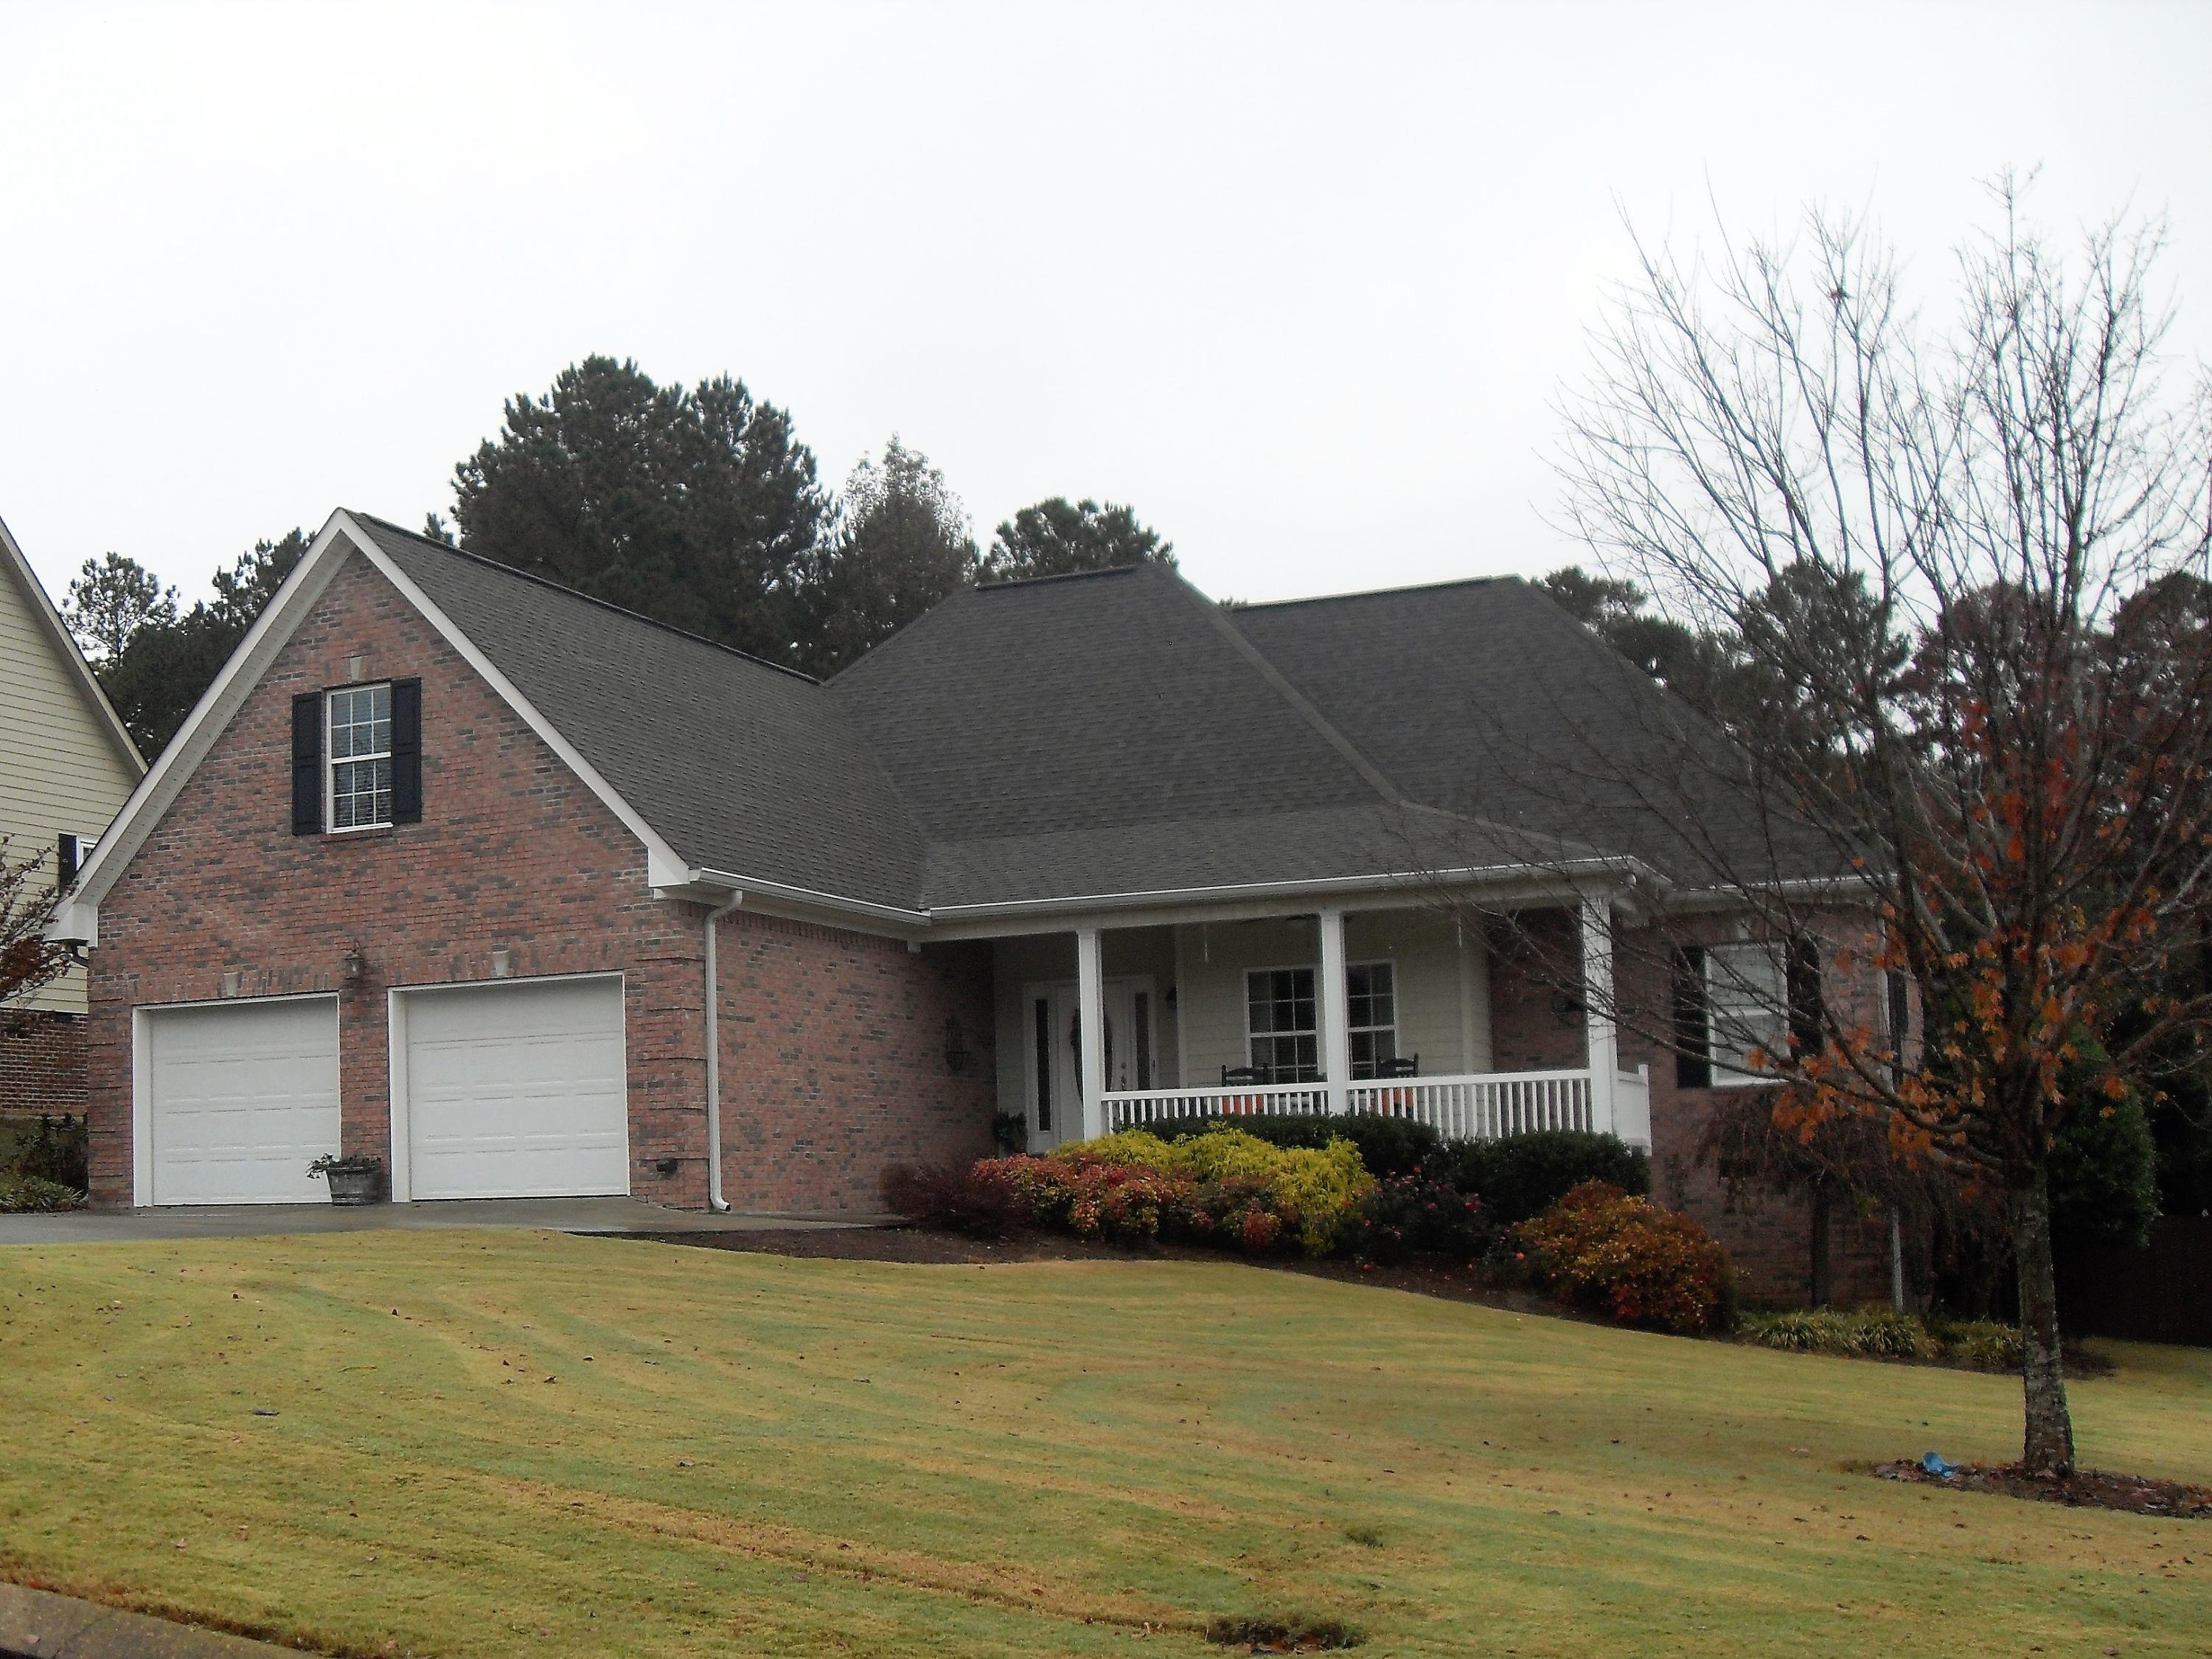 144 W Homeplace Dr, Tunnel Hill, GA 30755